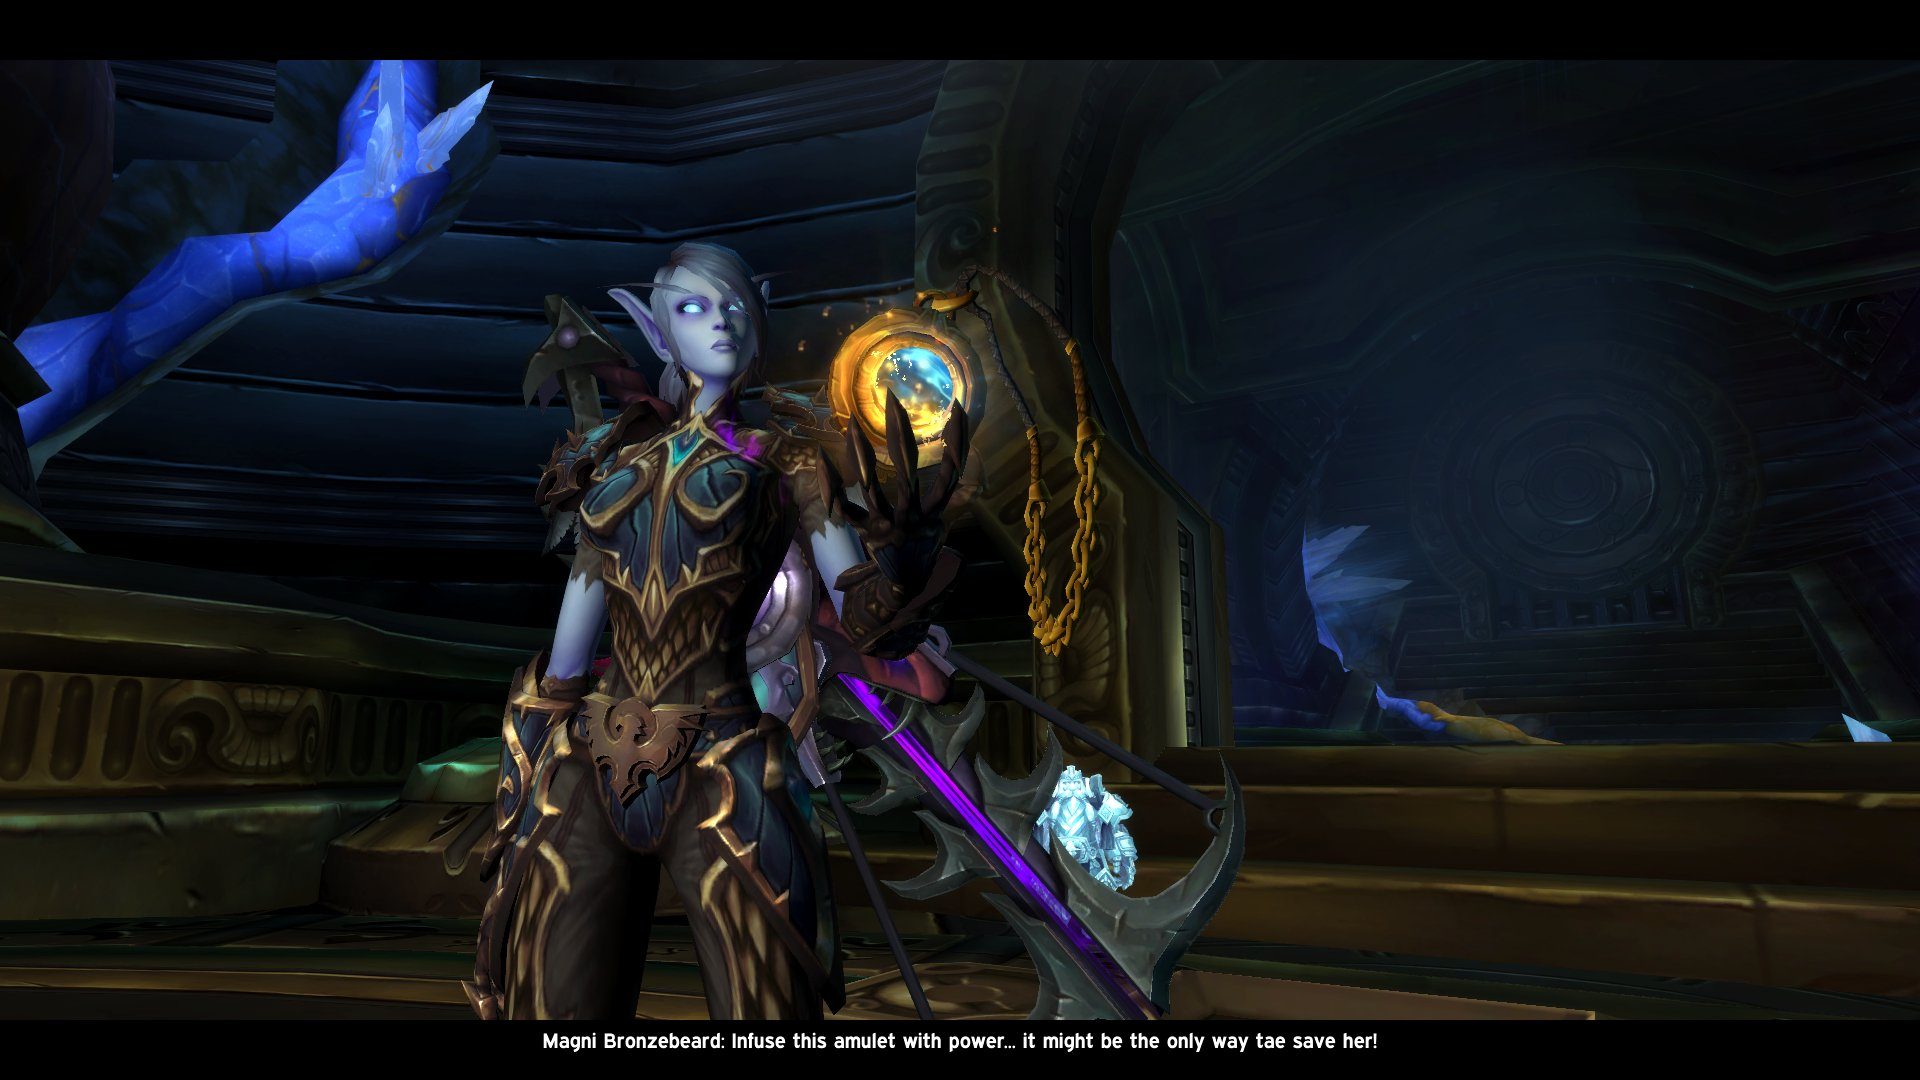 Sár picks up her Heart of Azeroth.